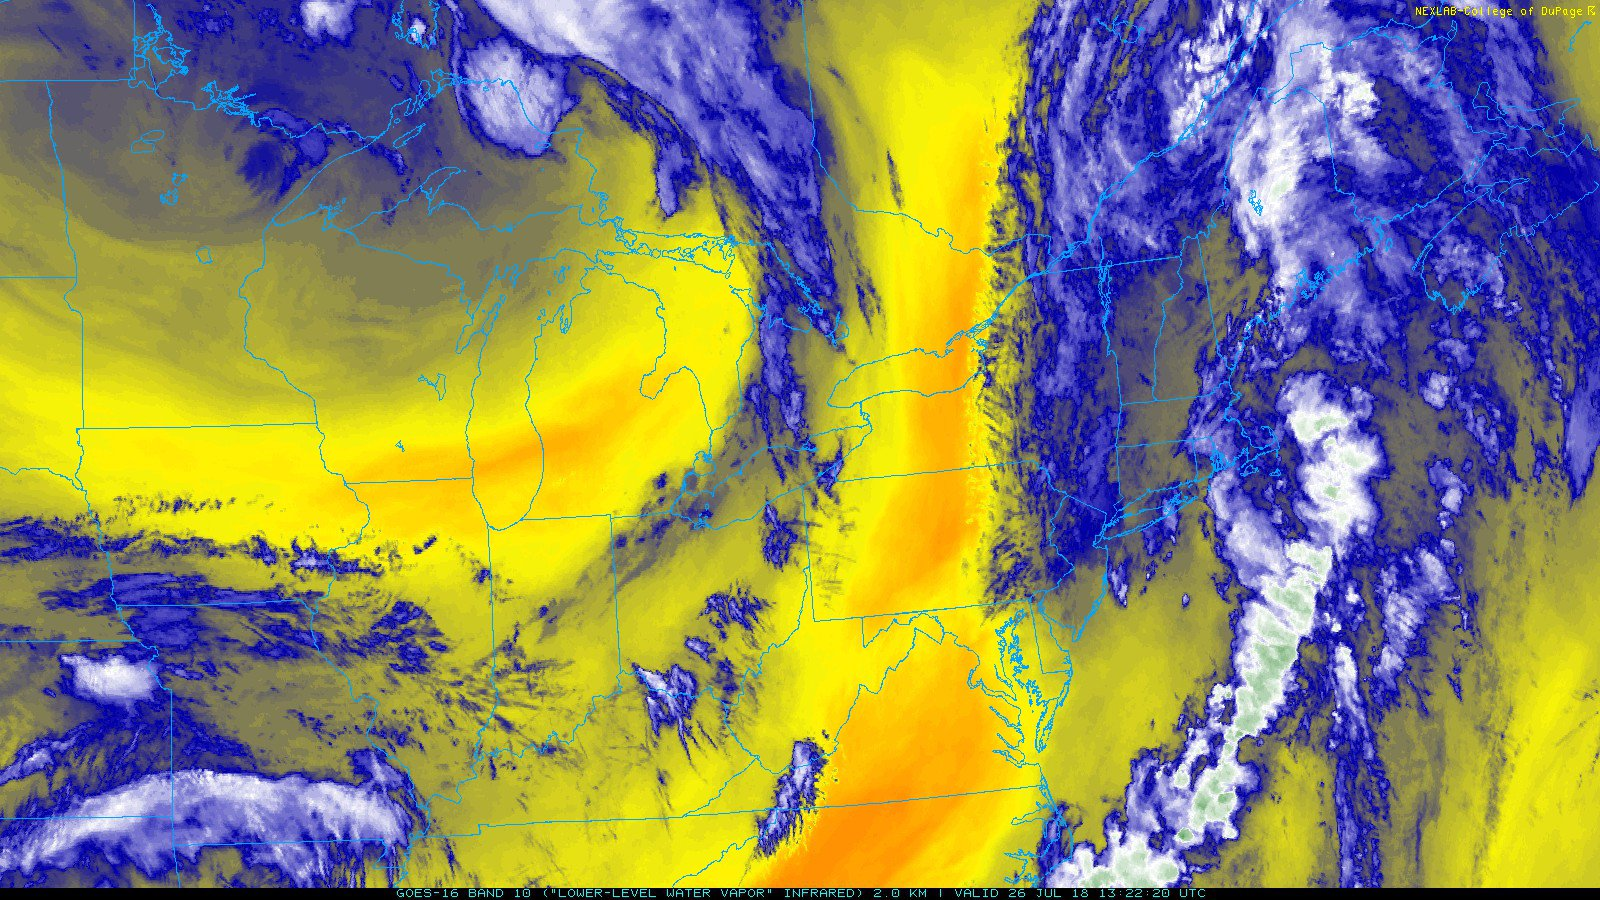 Sample product from GOES-16 with an image of the current low-level water vapor in the Northeast US (ABI band #10) Credit NOAA, College of DuPage  Band Type: Infrared Spatial Resolution: 2km Approximate Central Wavelength: 7.3 μm Temporal Usage: Night and Day  ABI 10 is the last of three water vapor bands available from GOES-R Series satellites. It has similar applications to the Mid-Level Water Vapor band but can add further clarity to jet-streaks and shortwave features embedded within large scale atmospheric flow patterns. It also has been proven to be useful in identifying/tracking volcanic plumes. Additionally, in combination with the other two water vapor bands, this data can be ingested by numerical weather models to improve forecasts by better approximating initial conditions of the atmosphere at large scales.